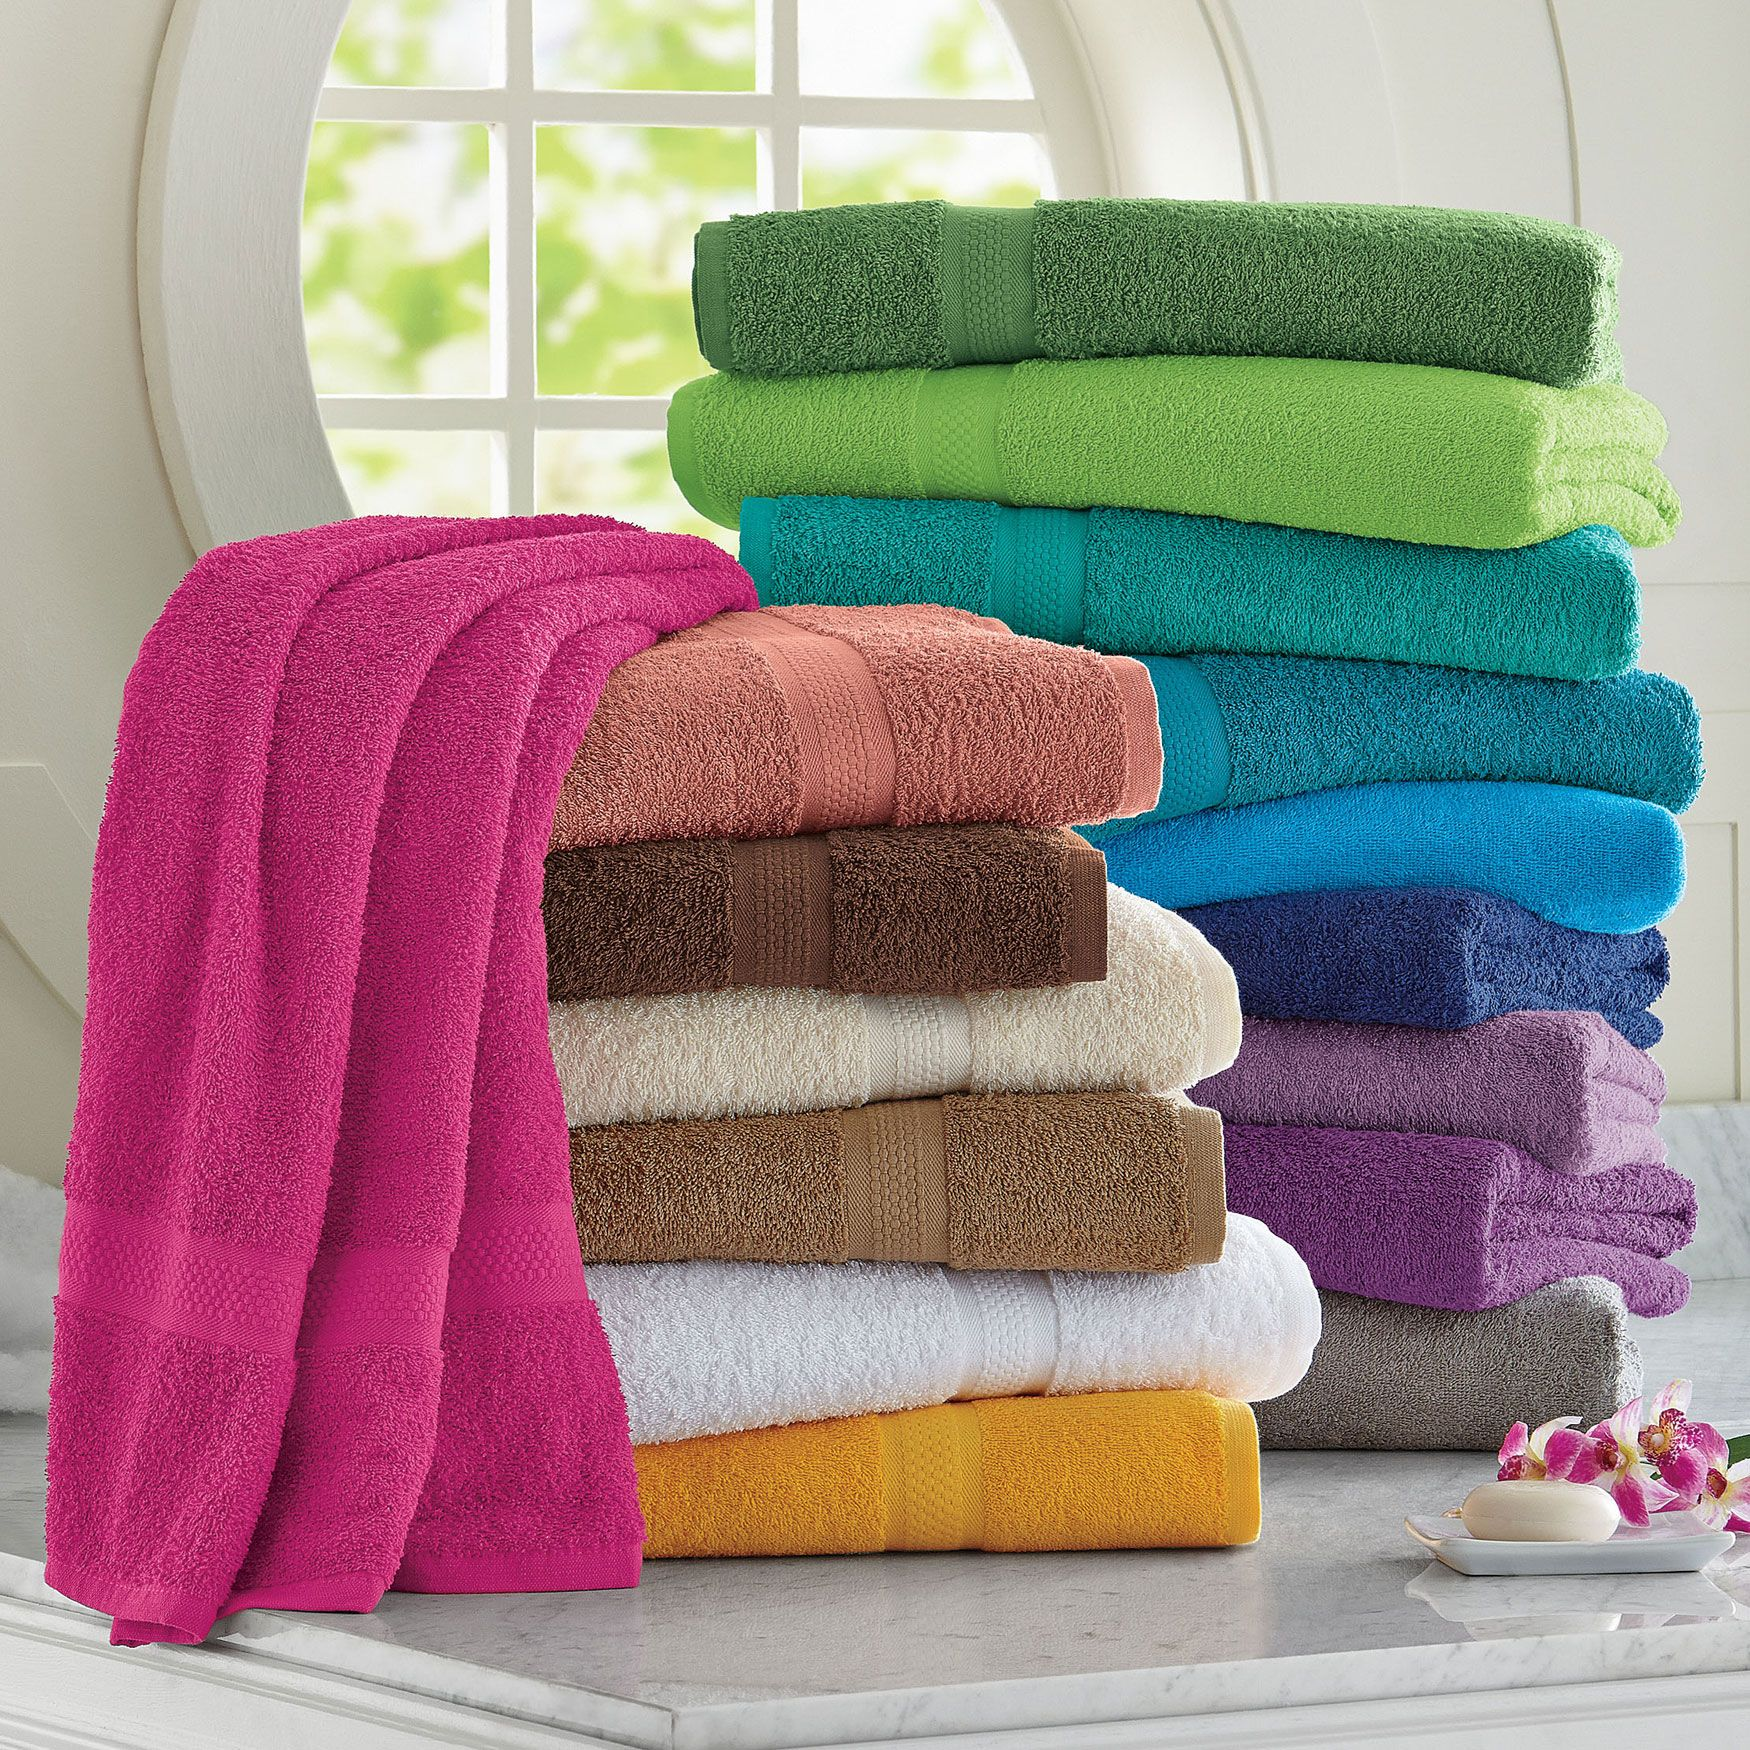 Brylanehome Studio Oversized Cotton Bath Sheet Bath Sheets Bath Towels Indoor Outdoor Furniture